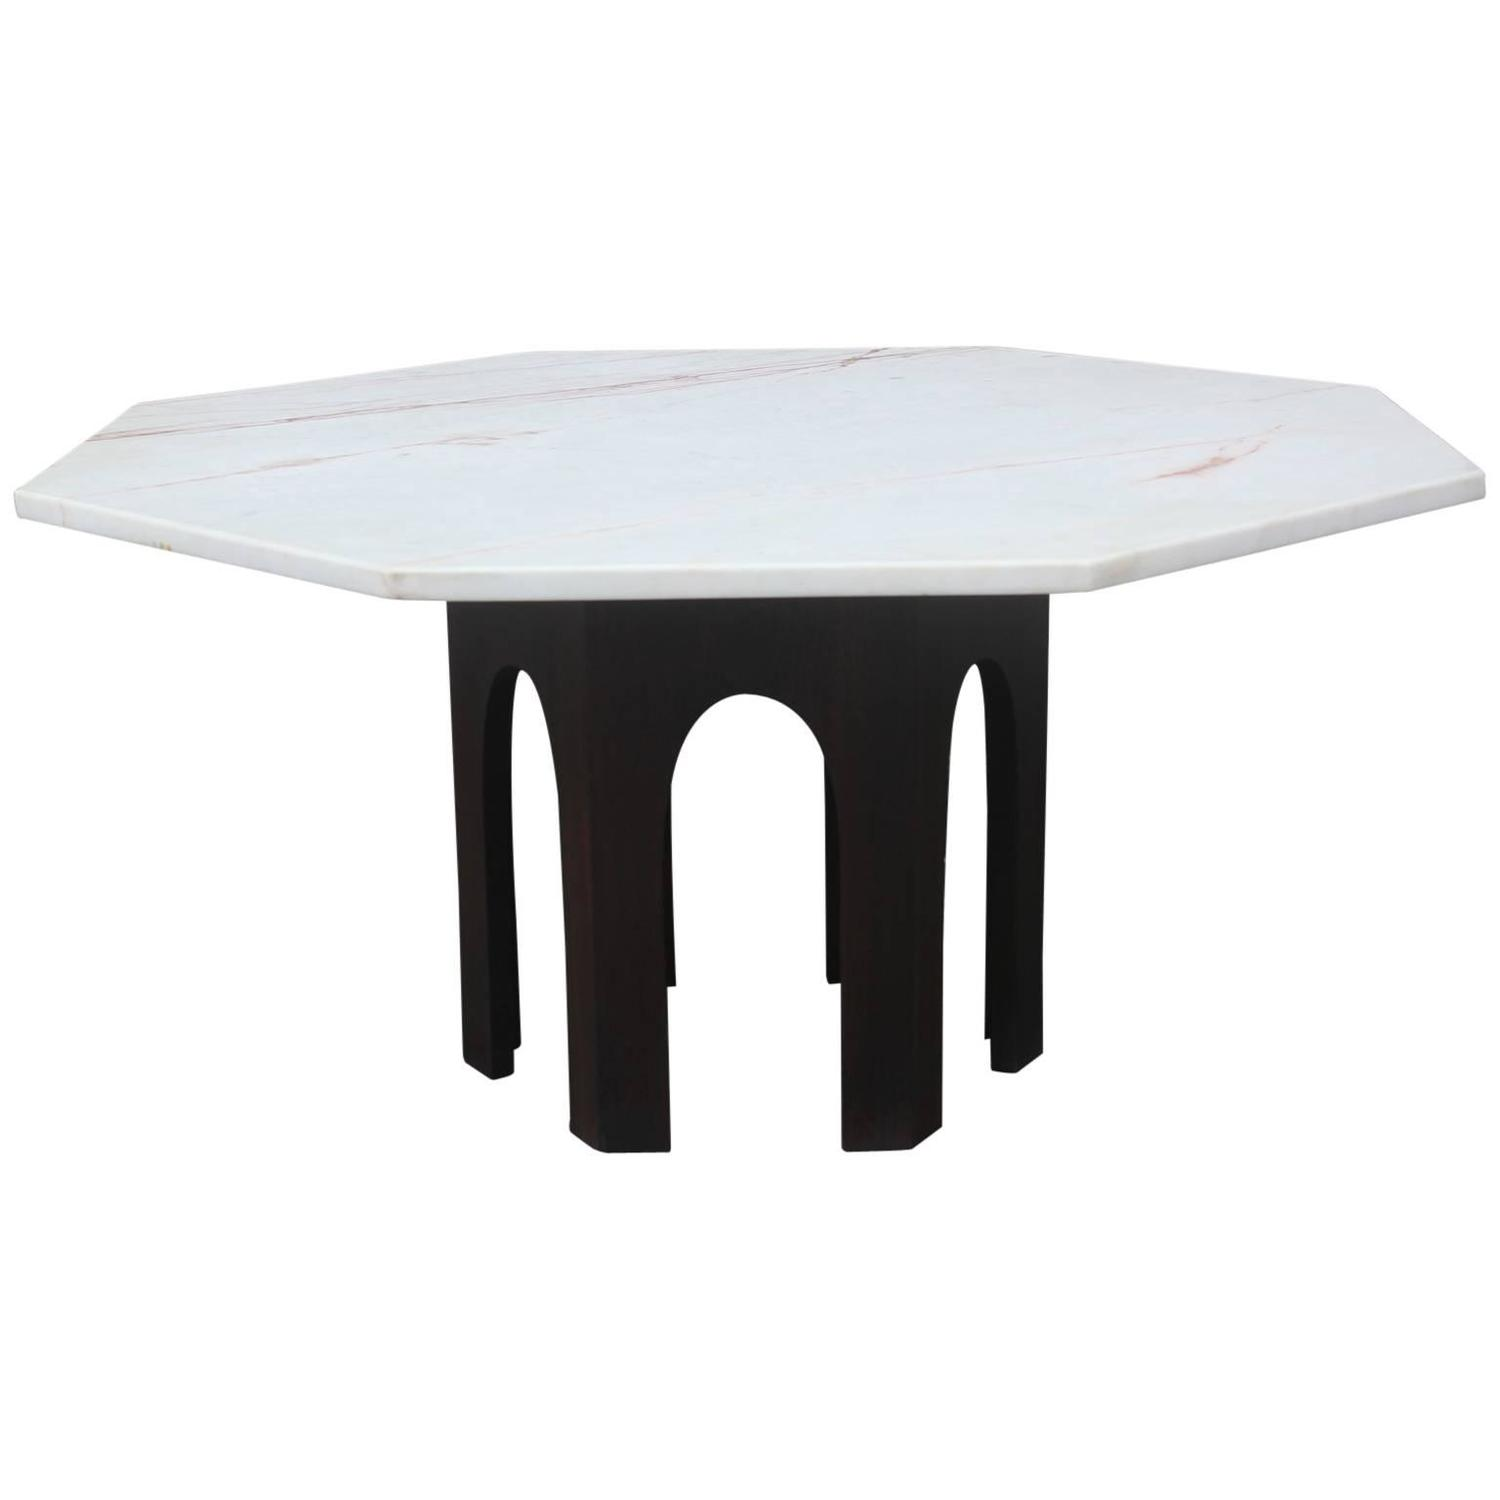 Marble Coffee Table Houston: Harvey Probber Marble-Topped Octagon Coffee Table For Sale